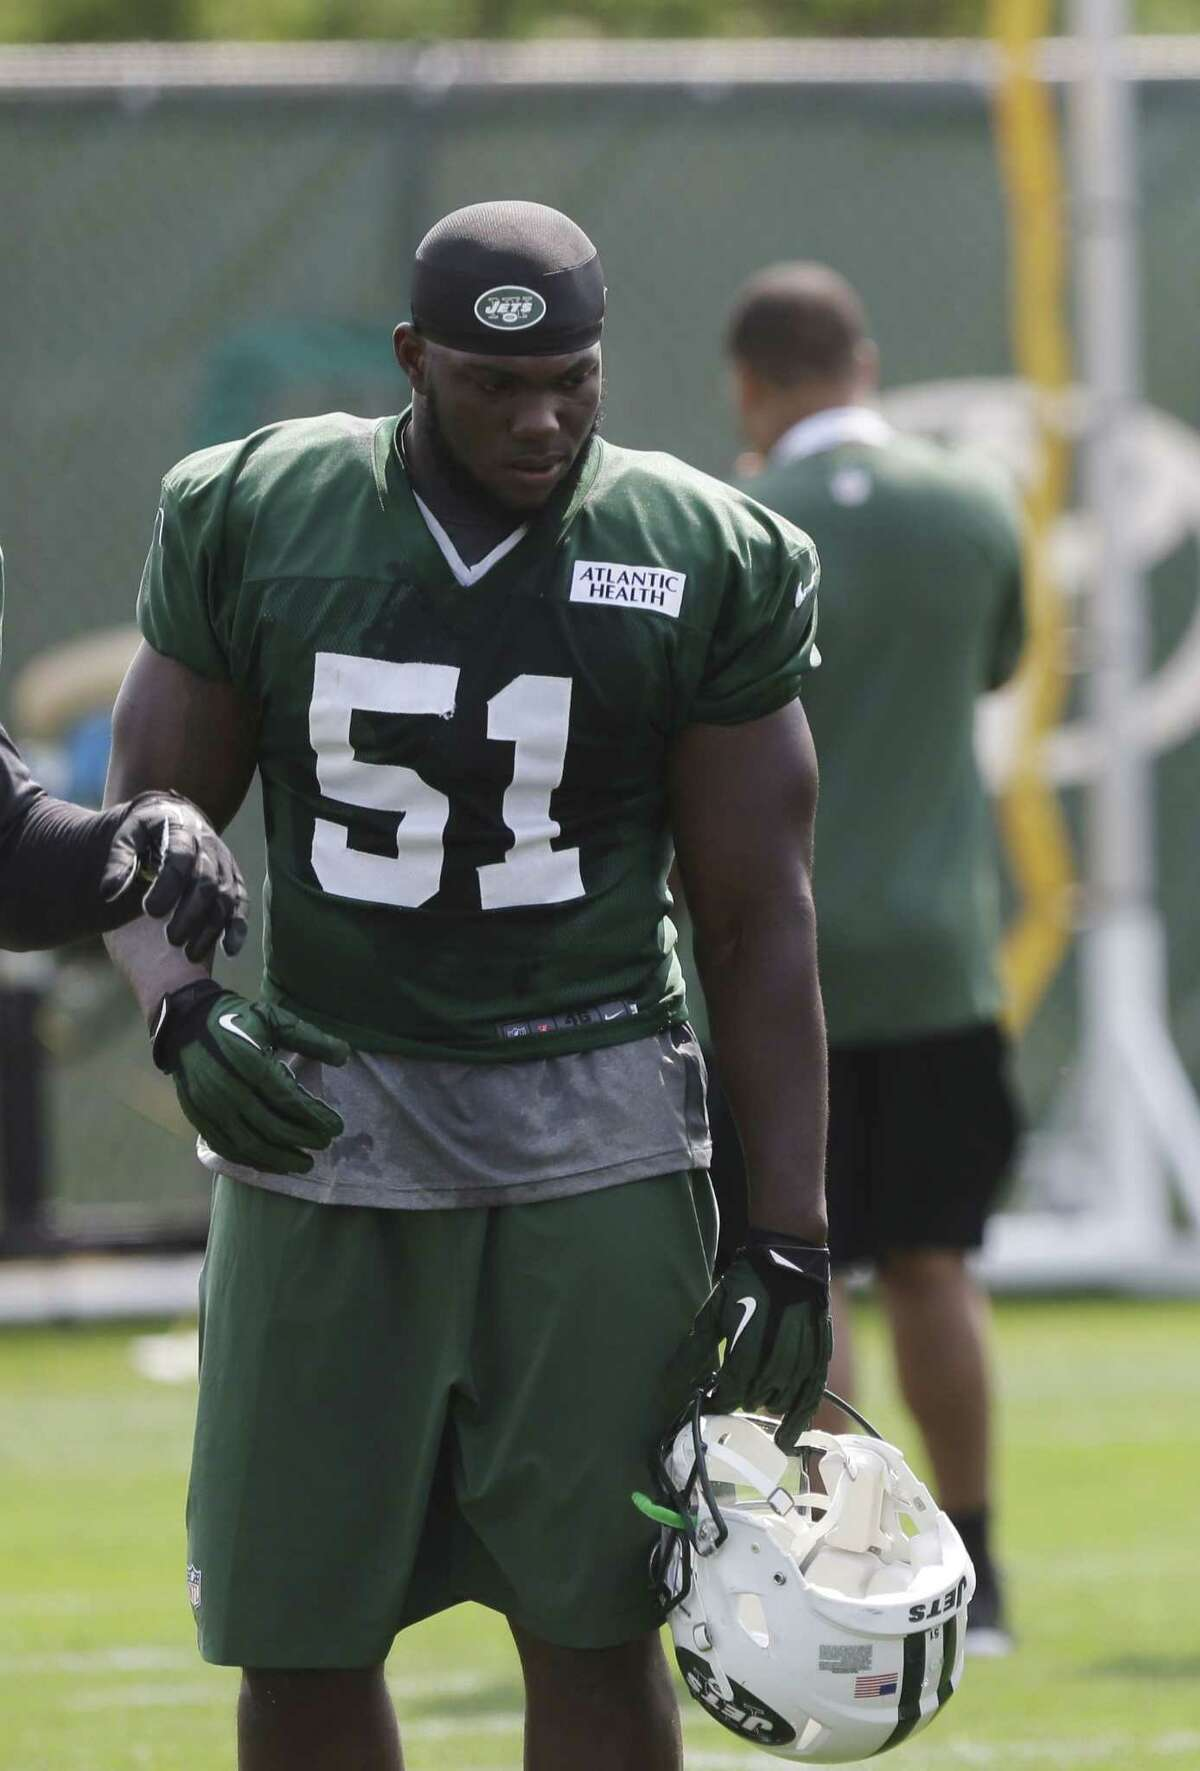 Former New York Jets linebacker Ikemefuna Enemkpali passed his physical with the Buffalo Bills on Thursday.